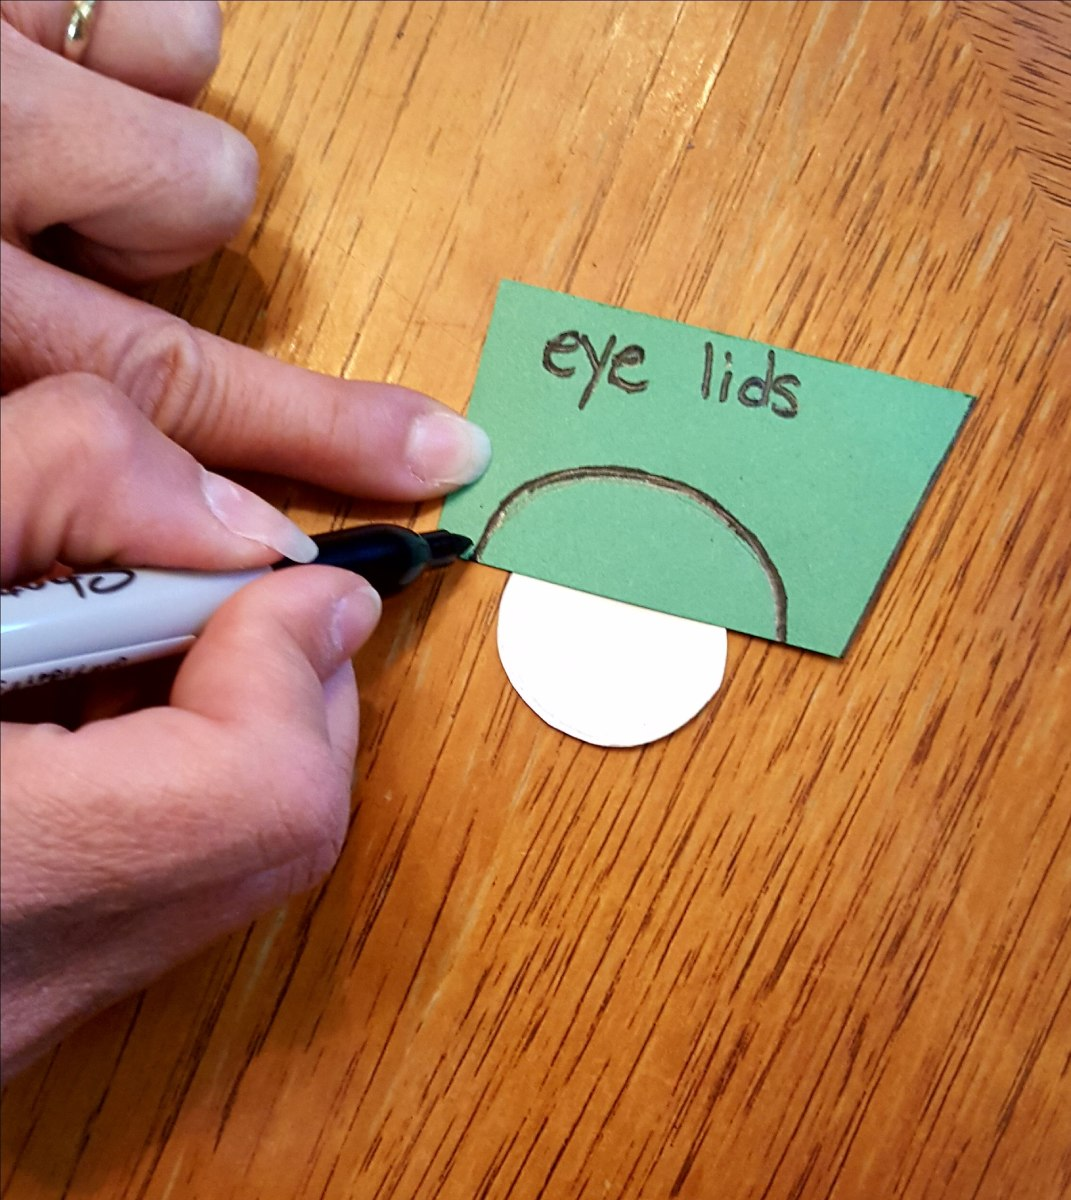 Drawing the Eyelids